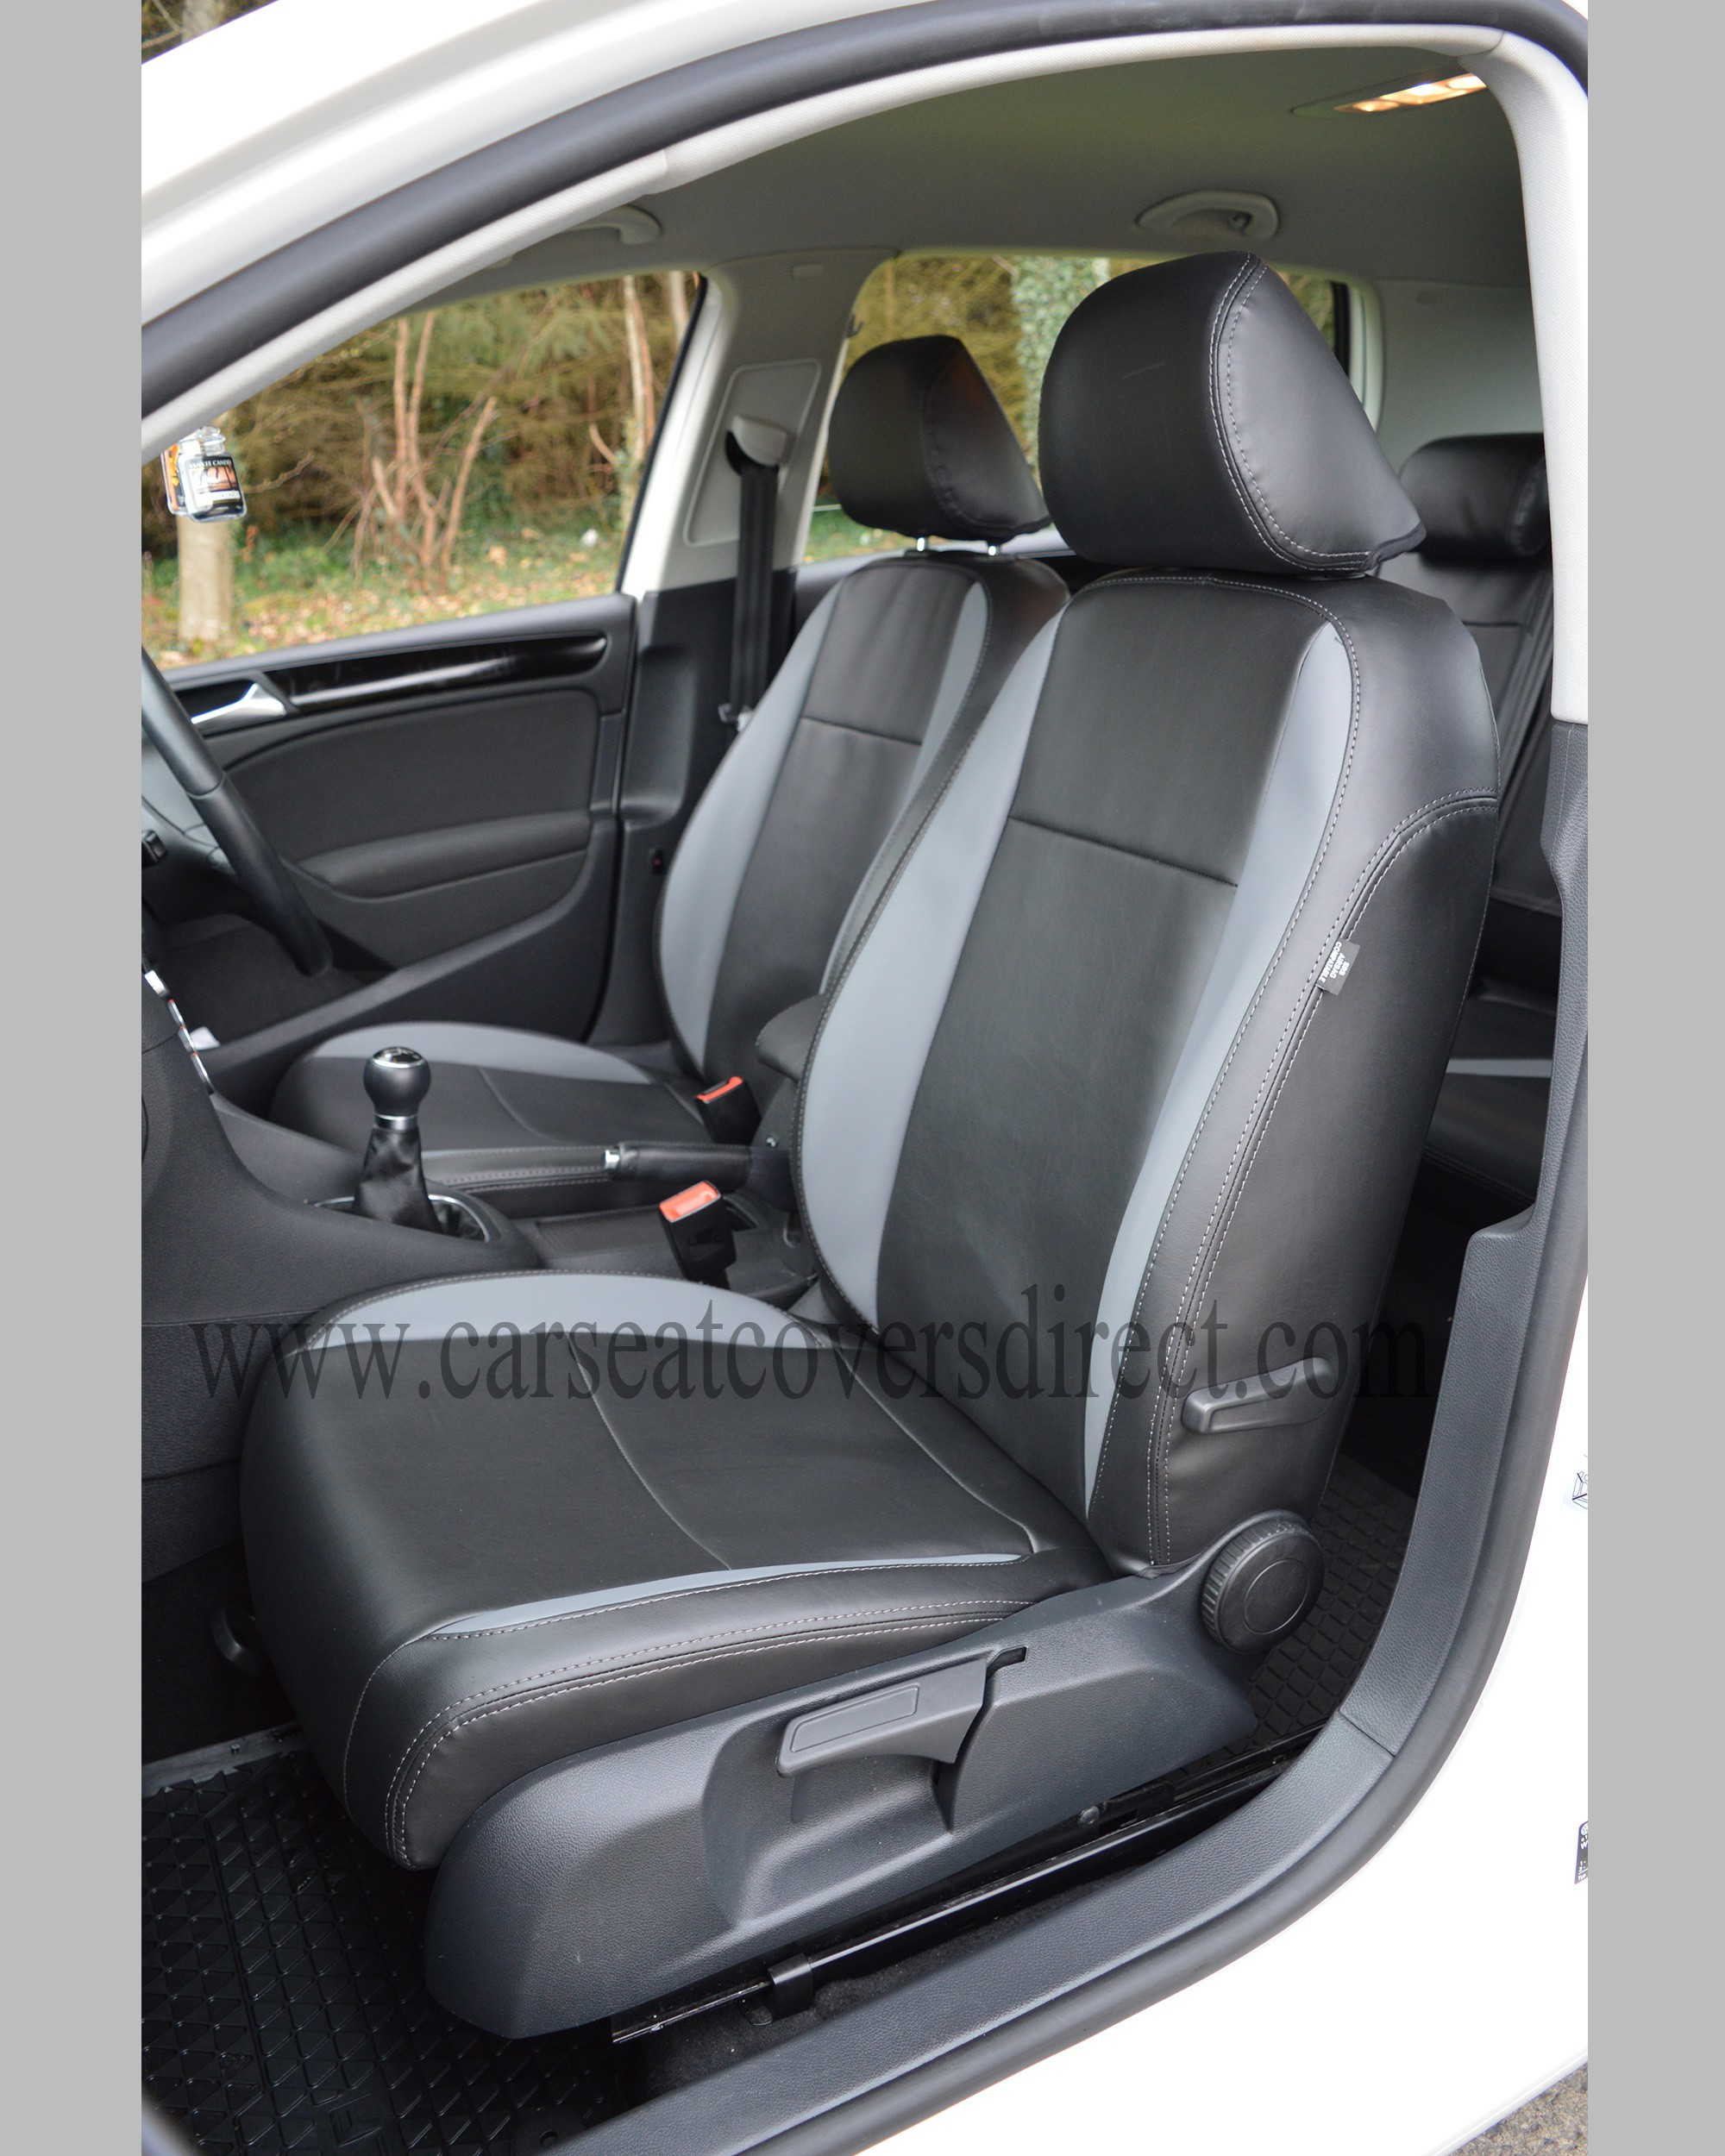 VOLKSWAGEN VW GOLF MK6 BLACK & GREY SEAT COVERS